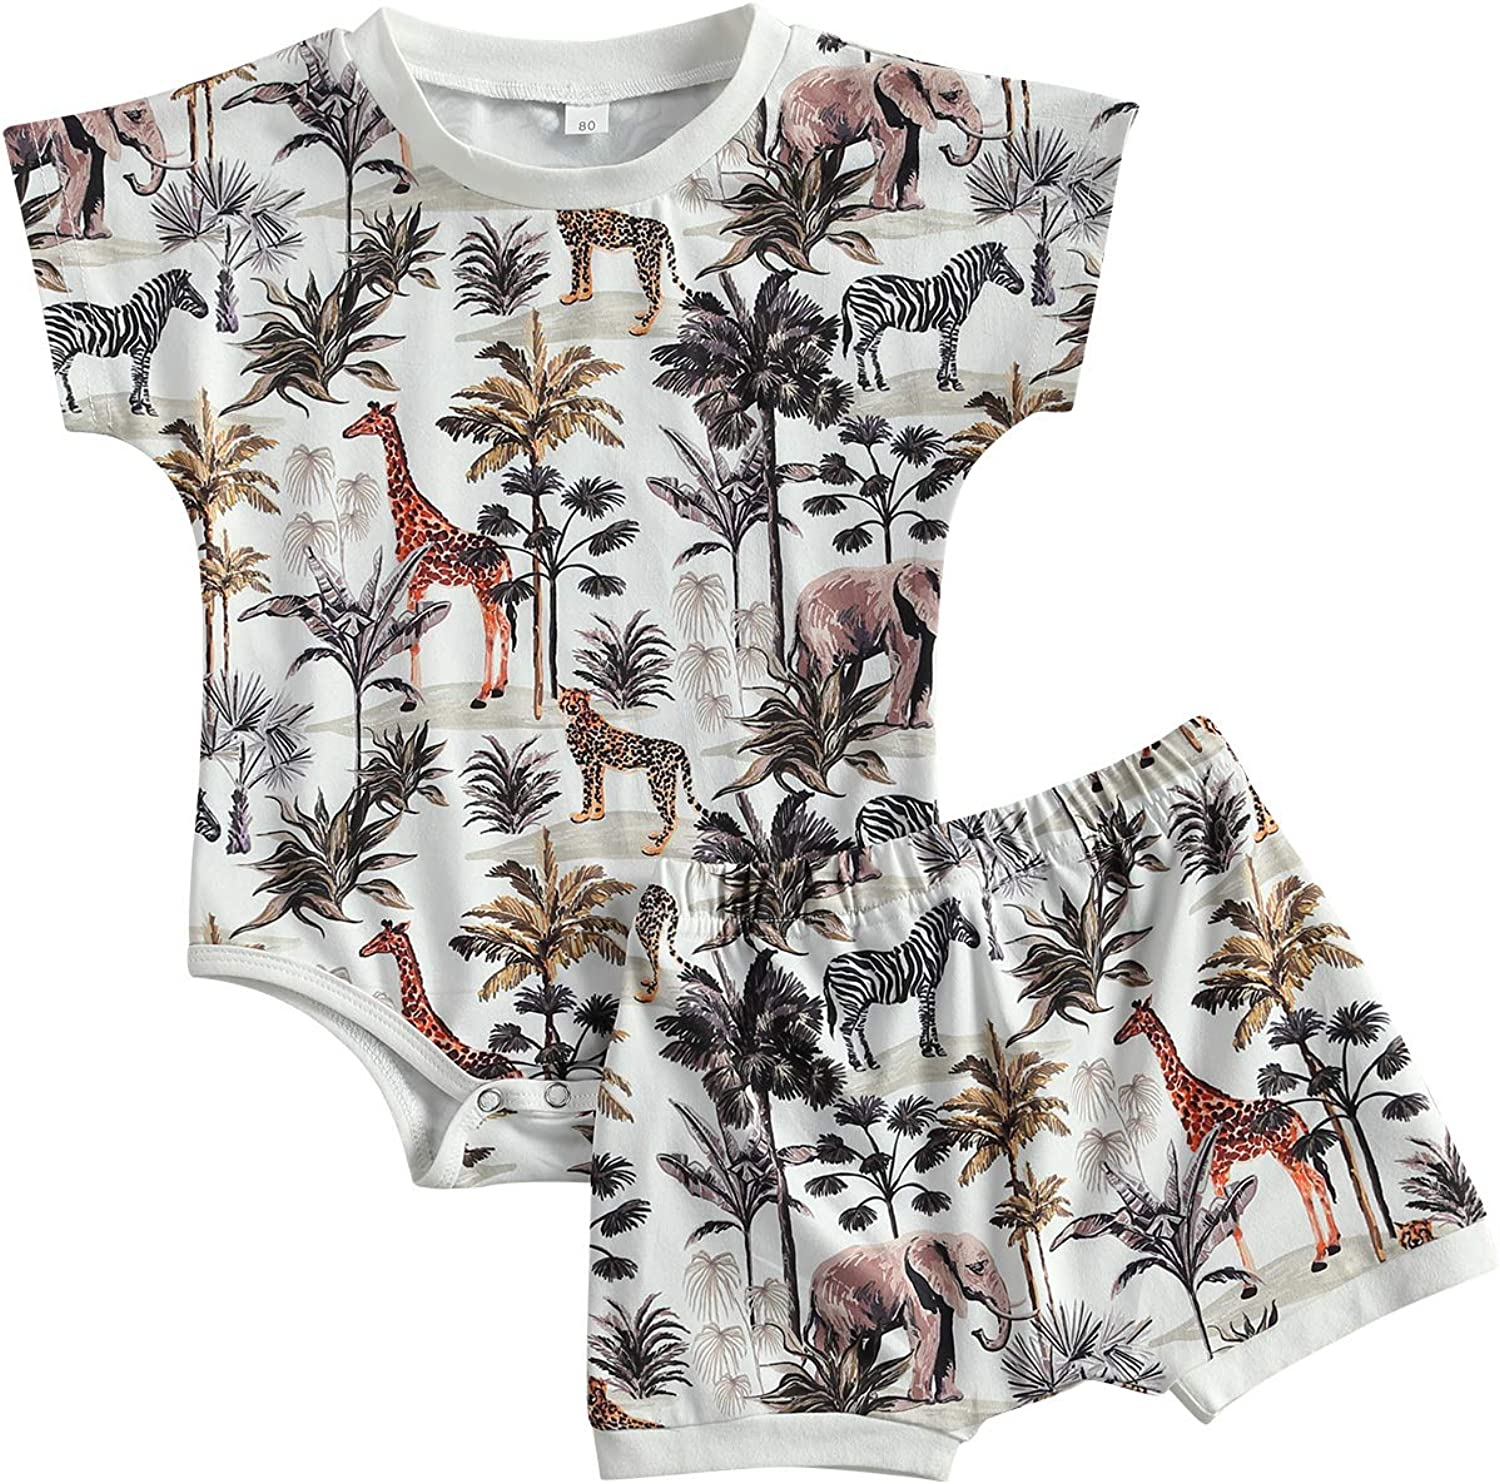 Baby Toddler Boy Summer Outfits Short Sleeve Romper Palm Tree Animal Print Bodysuit and Shorts 2Pcs Clothes Set